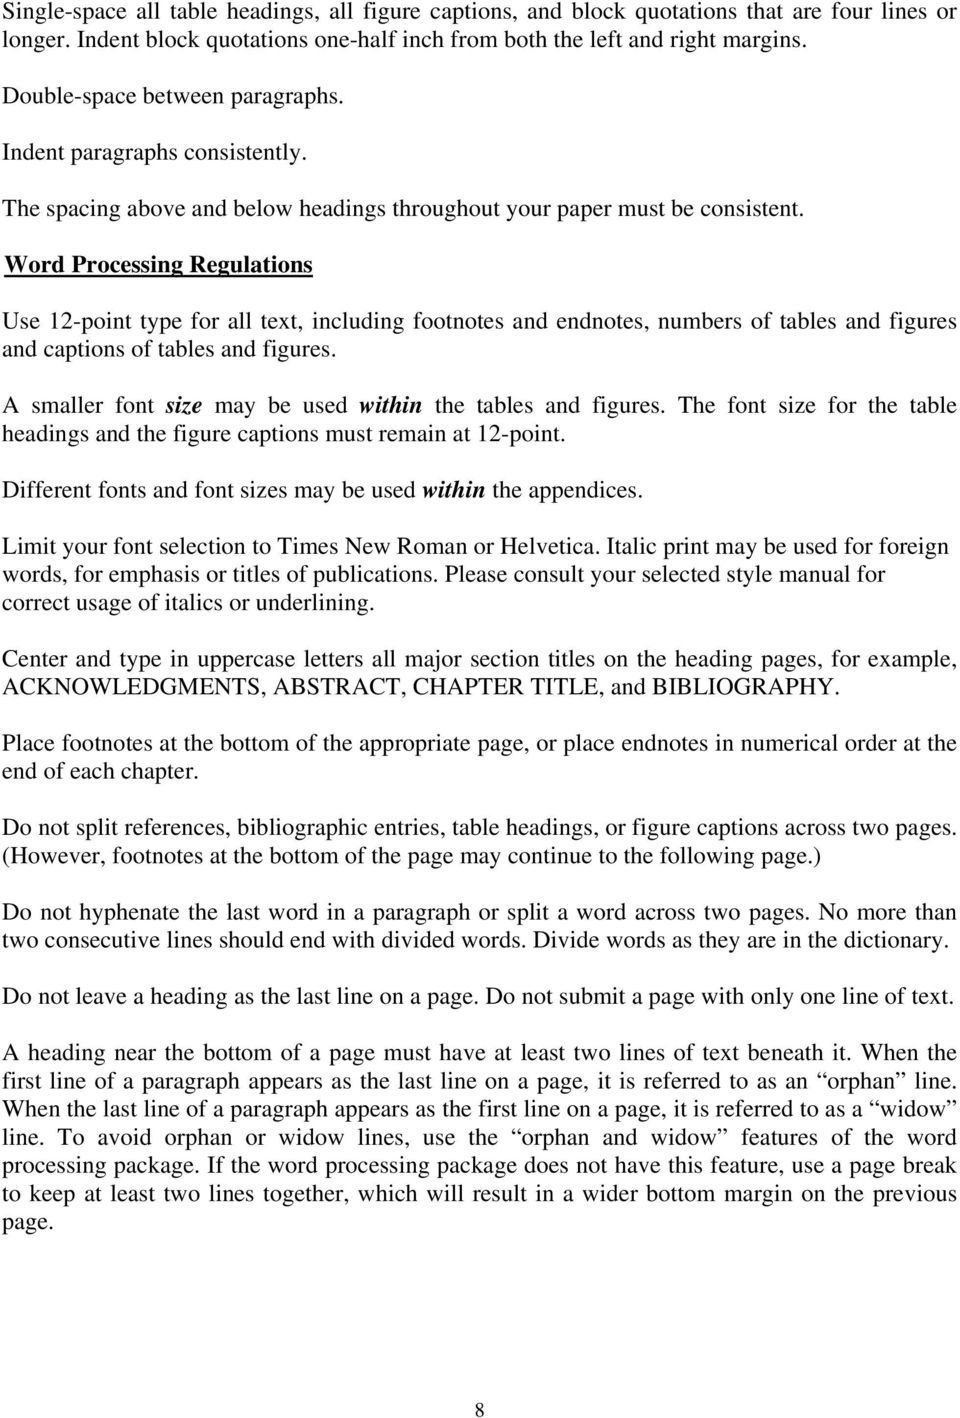 Word Processing Regulations Use 12-point type for all text, including footnotes and endnotes, numbers of tables and figures and captions of tables and figures.